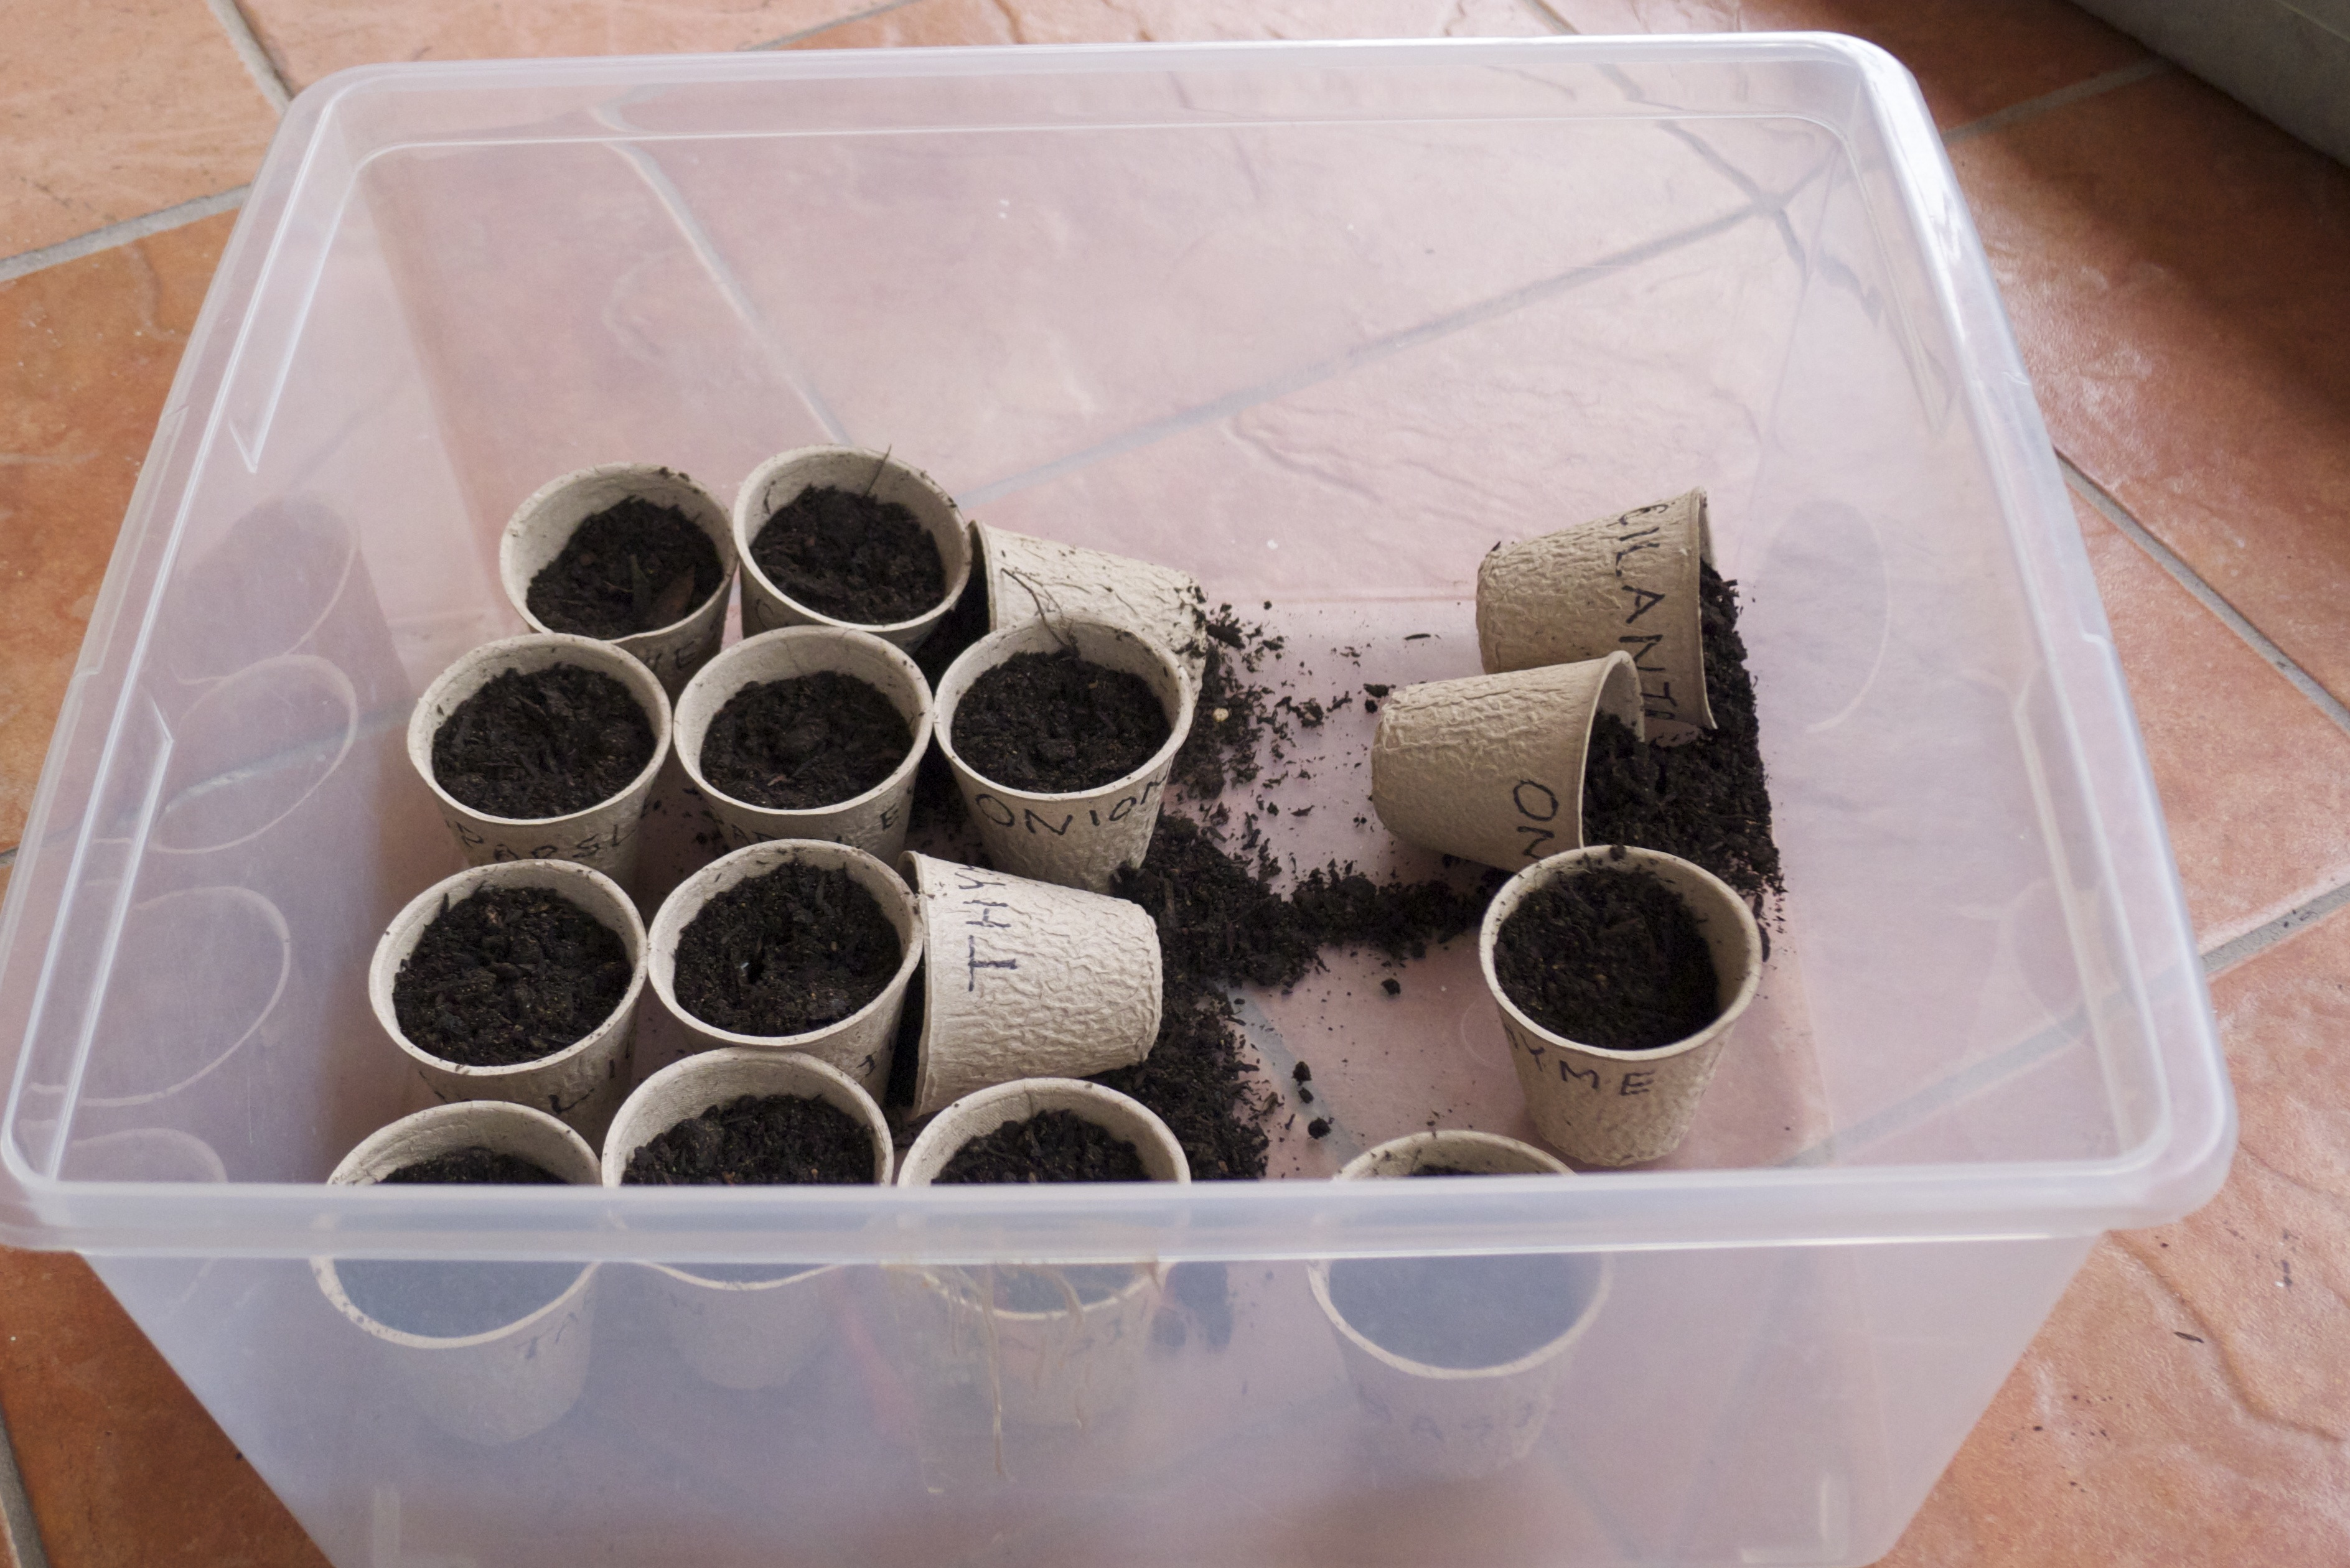 Note to self - these little pots are not very stable...